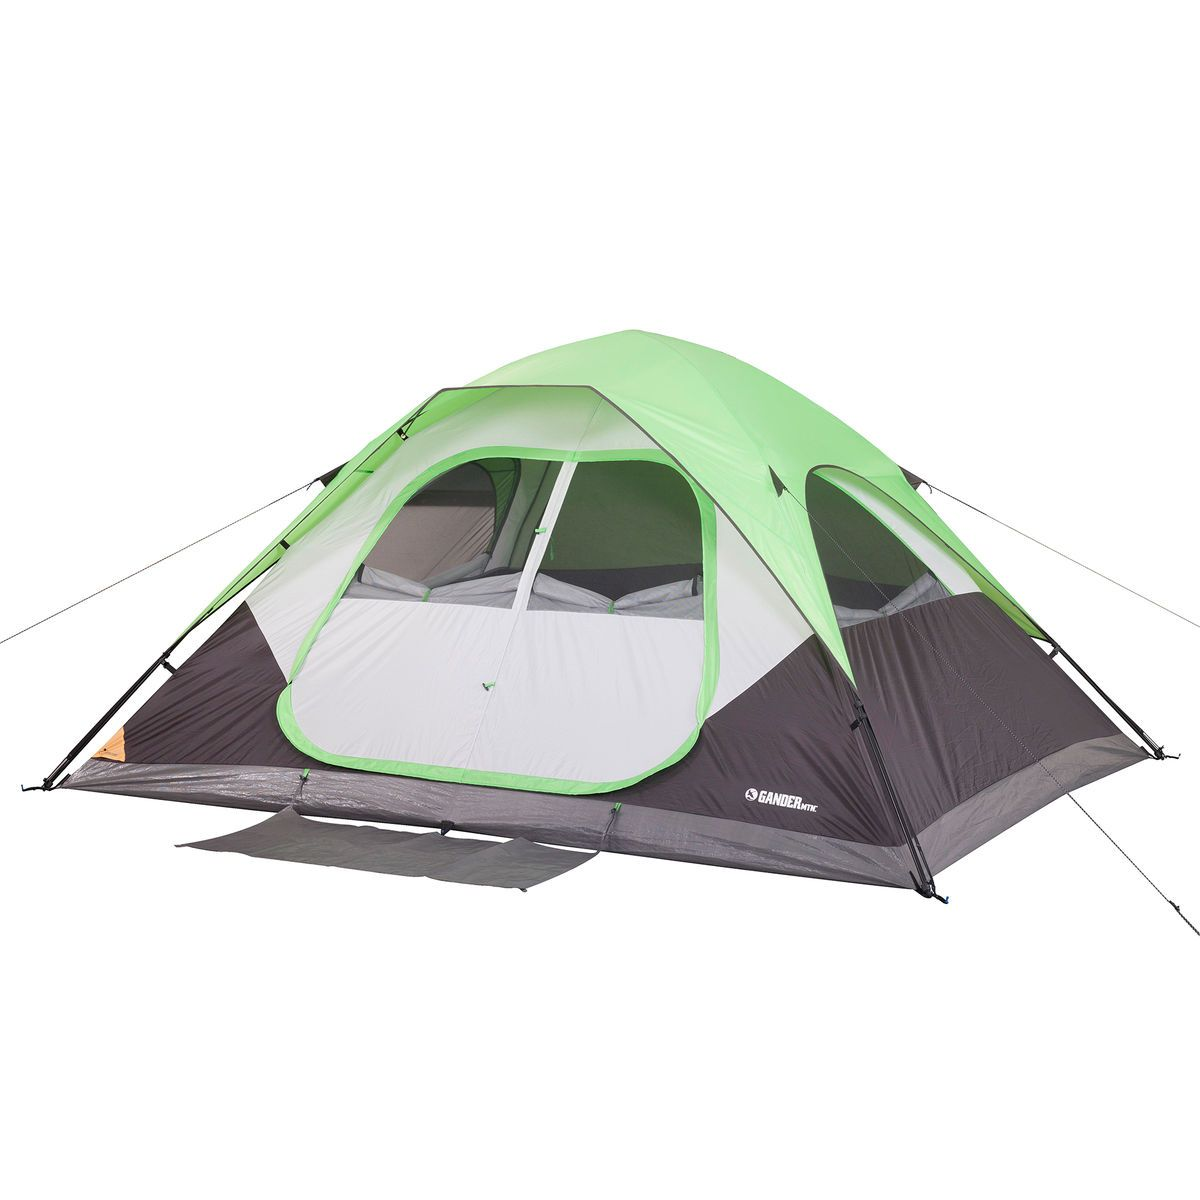 Gander Mountain Quick 6-Person Instant Dome Tent-765154 - Gander Mountain  sc 1 st  Pinterest & Gander Mountain Quick 6-Person Instant Dome Tent-765154 - Gander ...